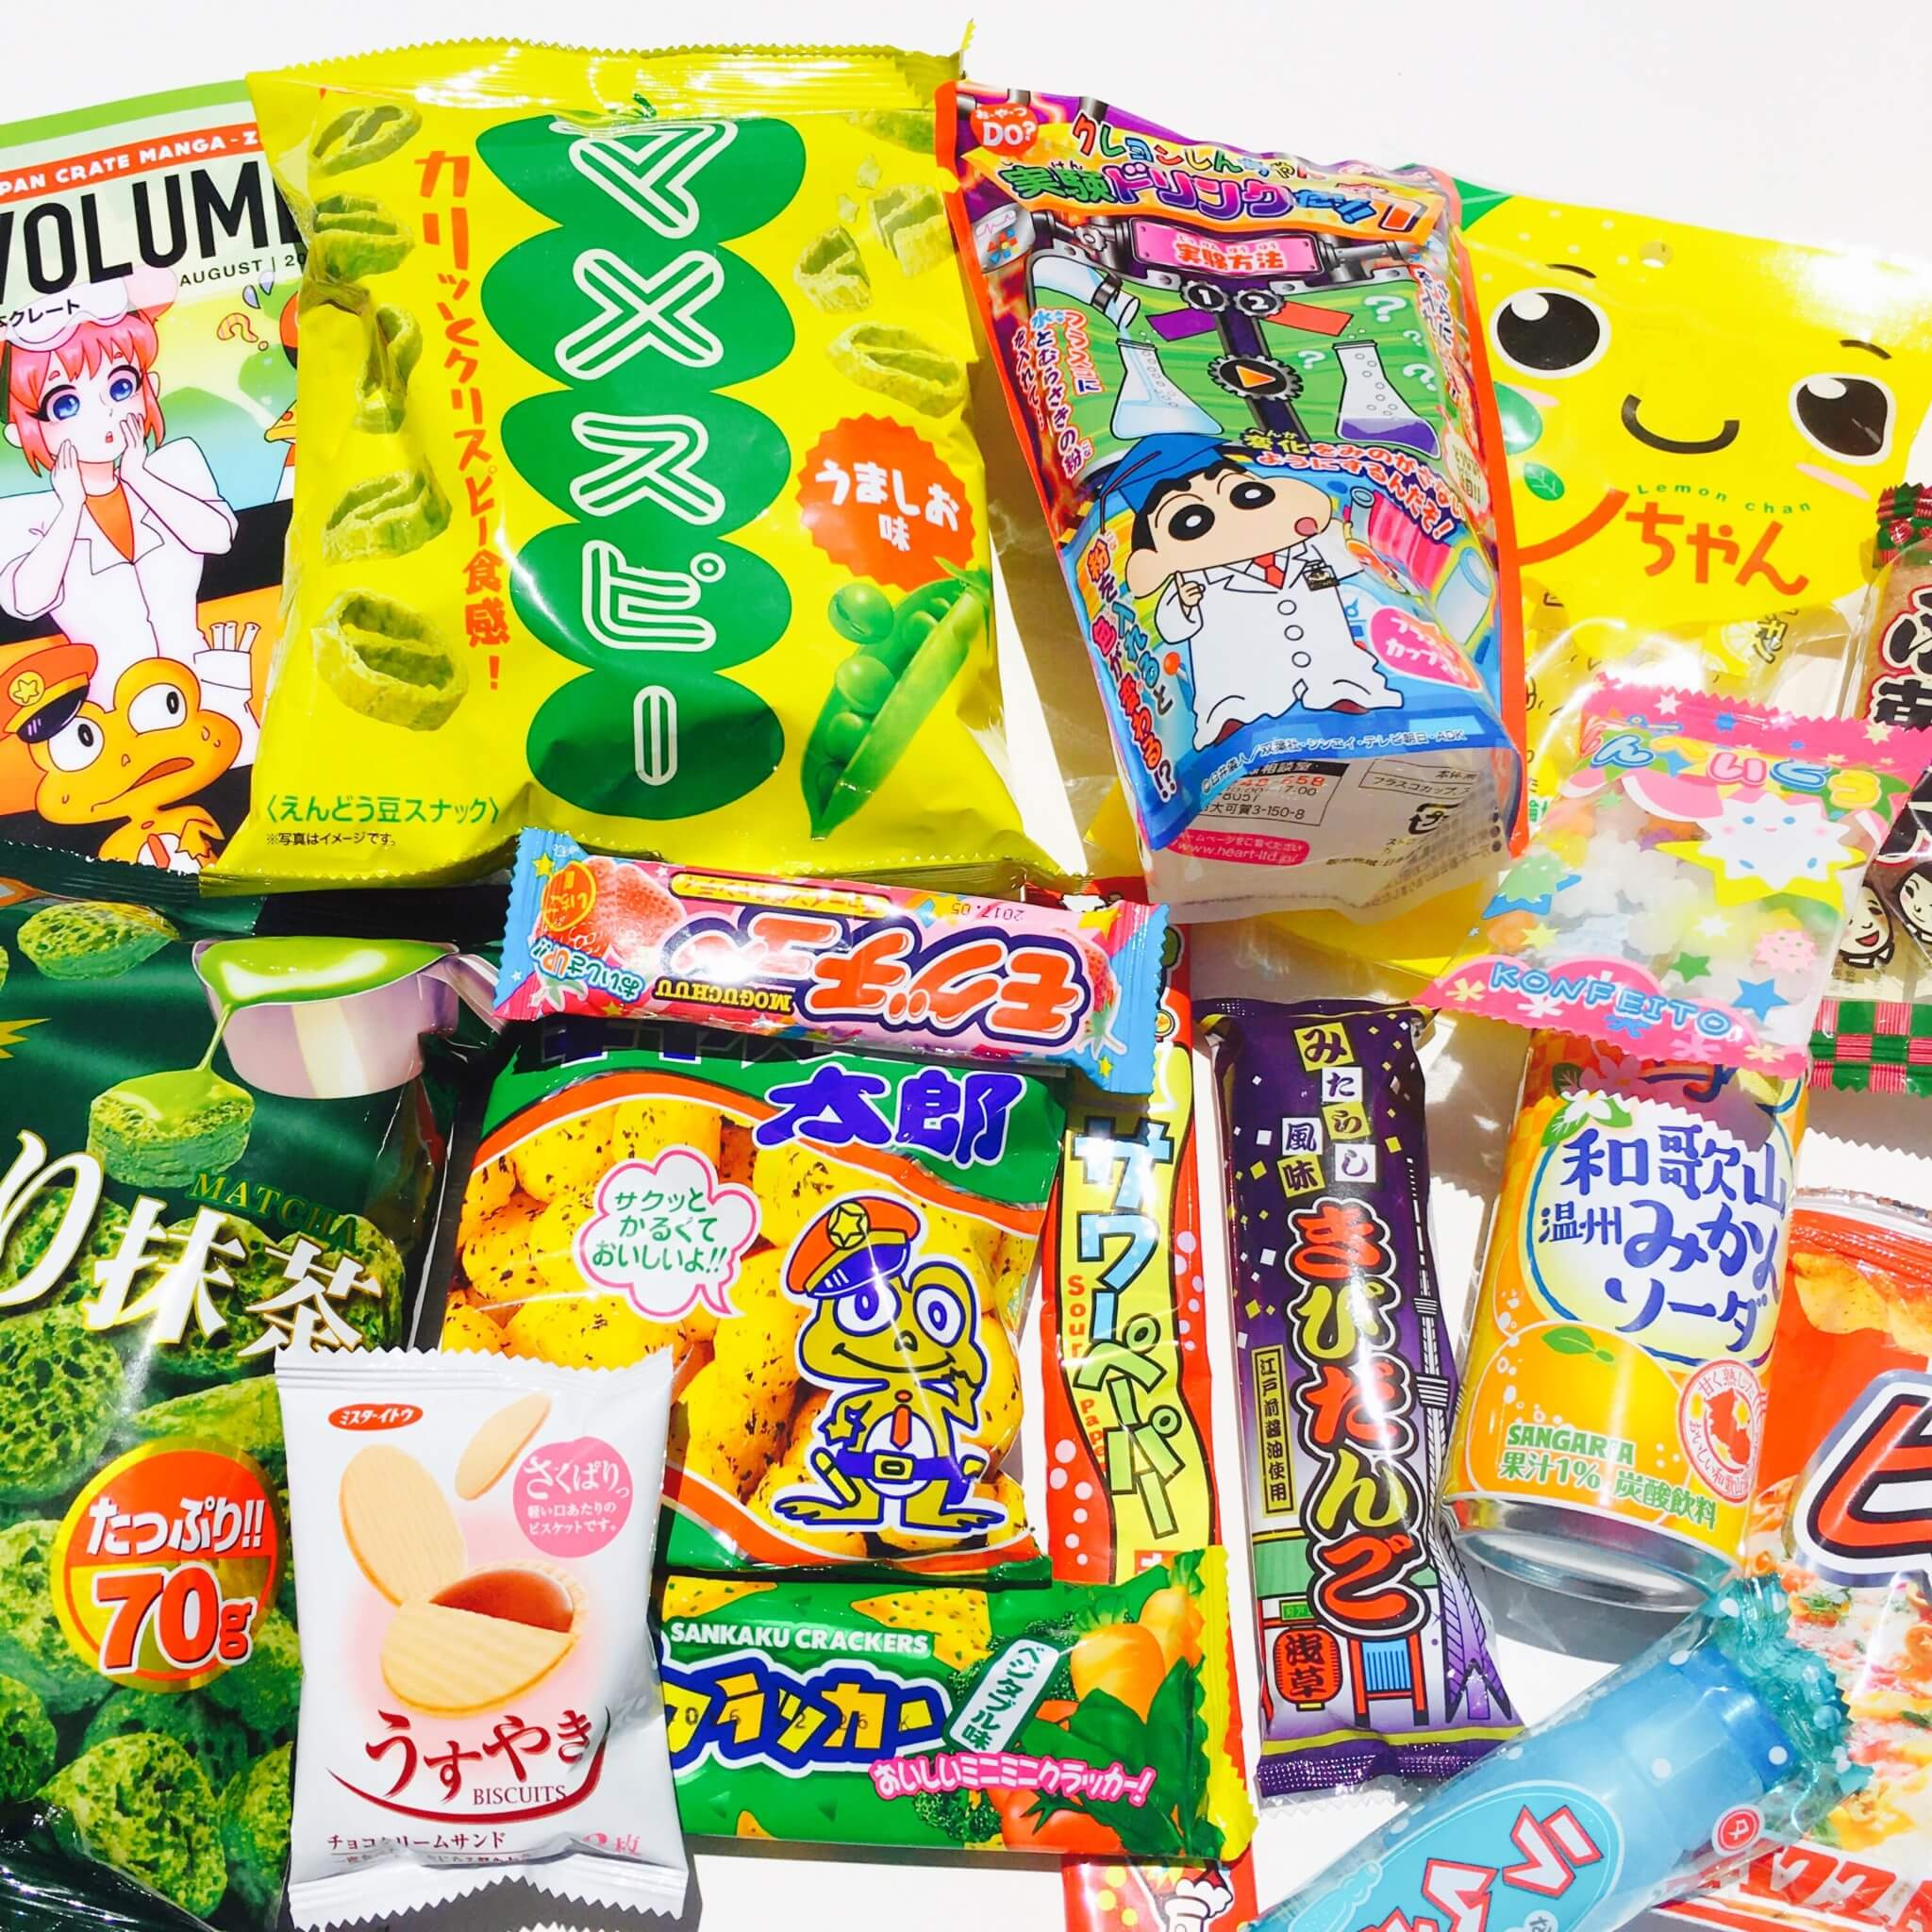 Japan Crate August 2016 Subscription Box Review + Coupon